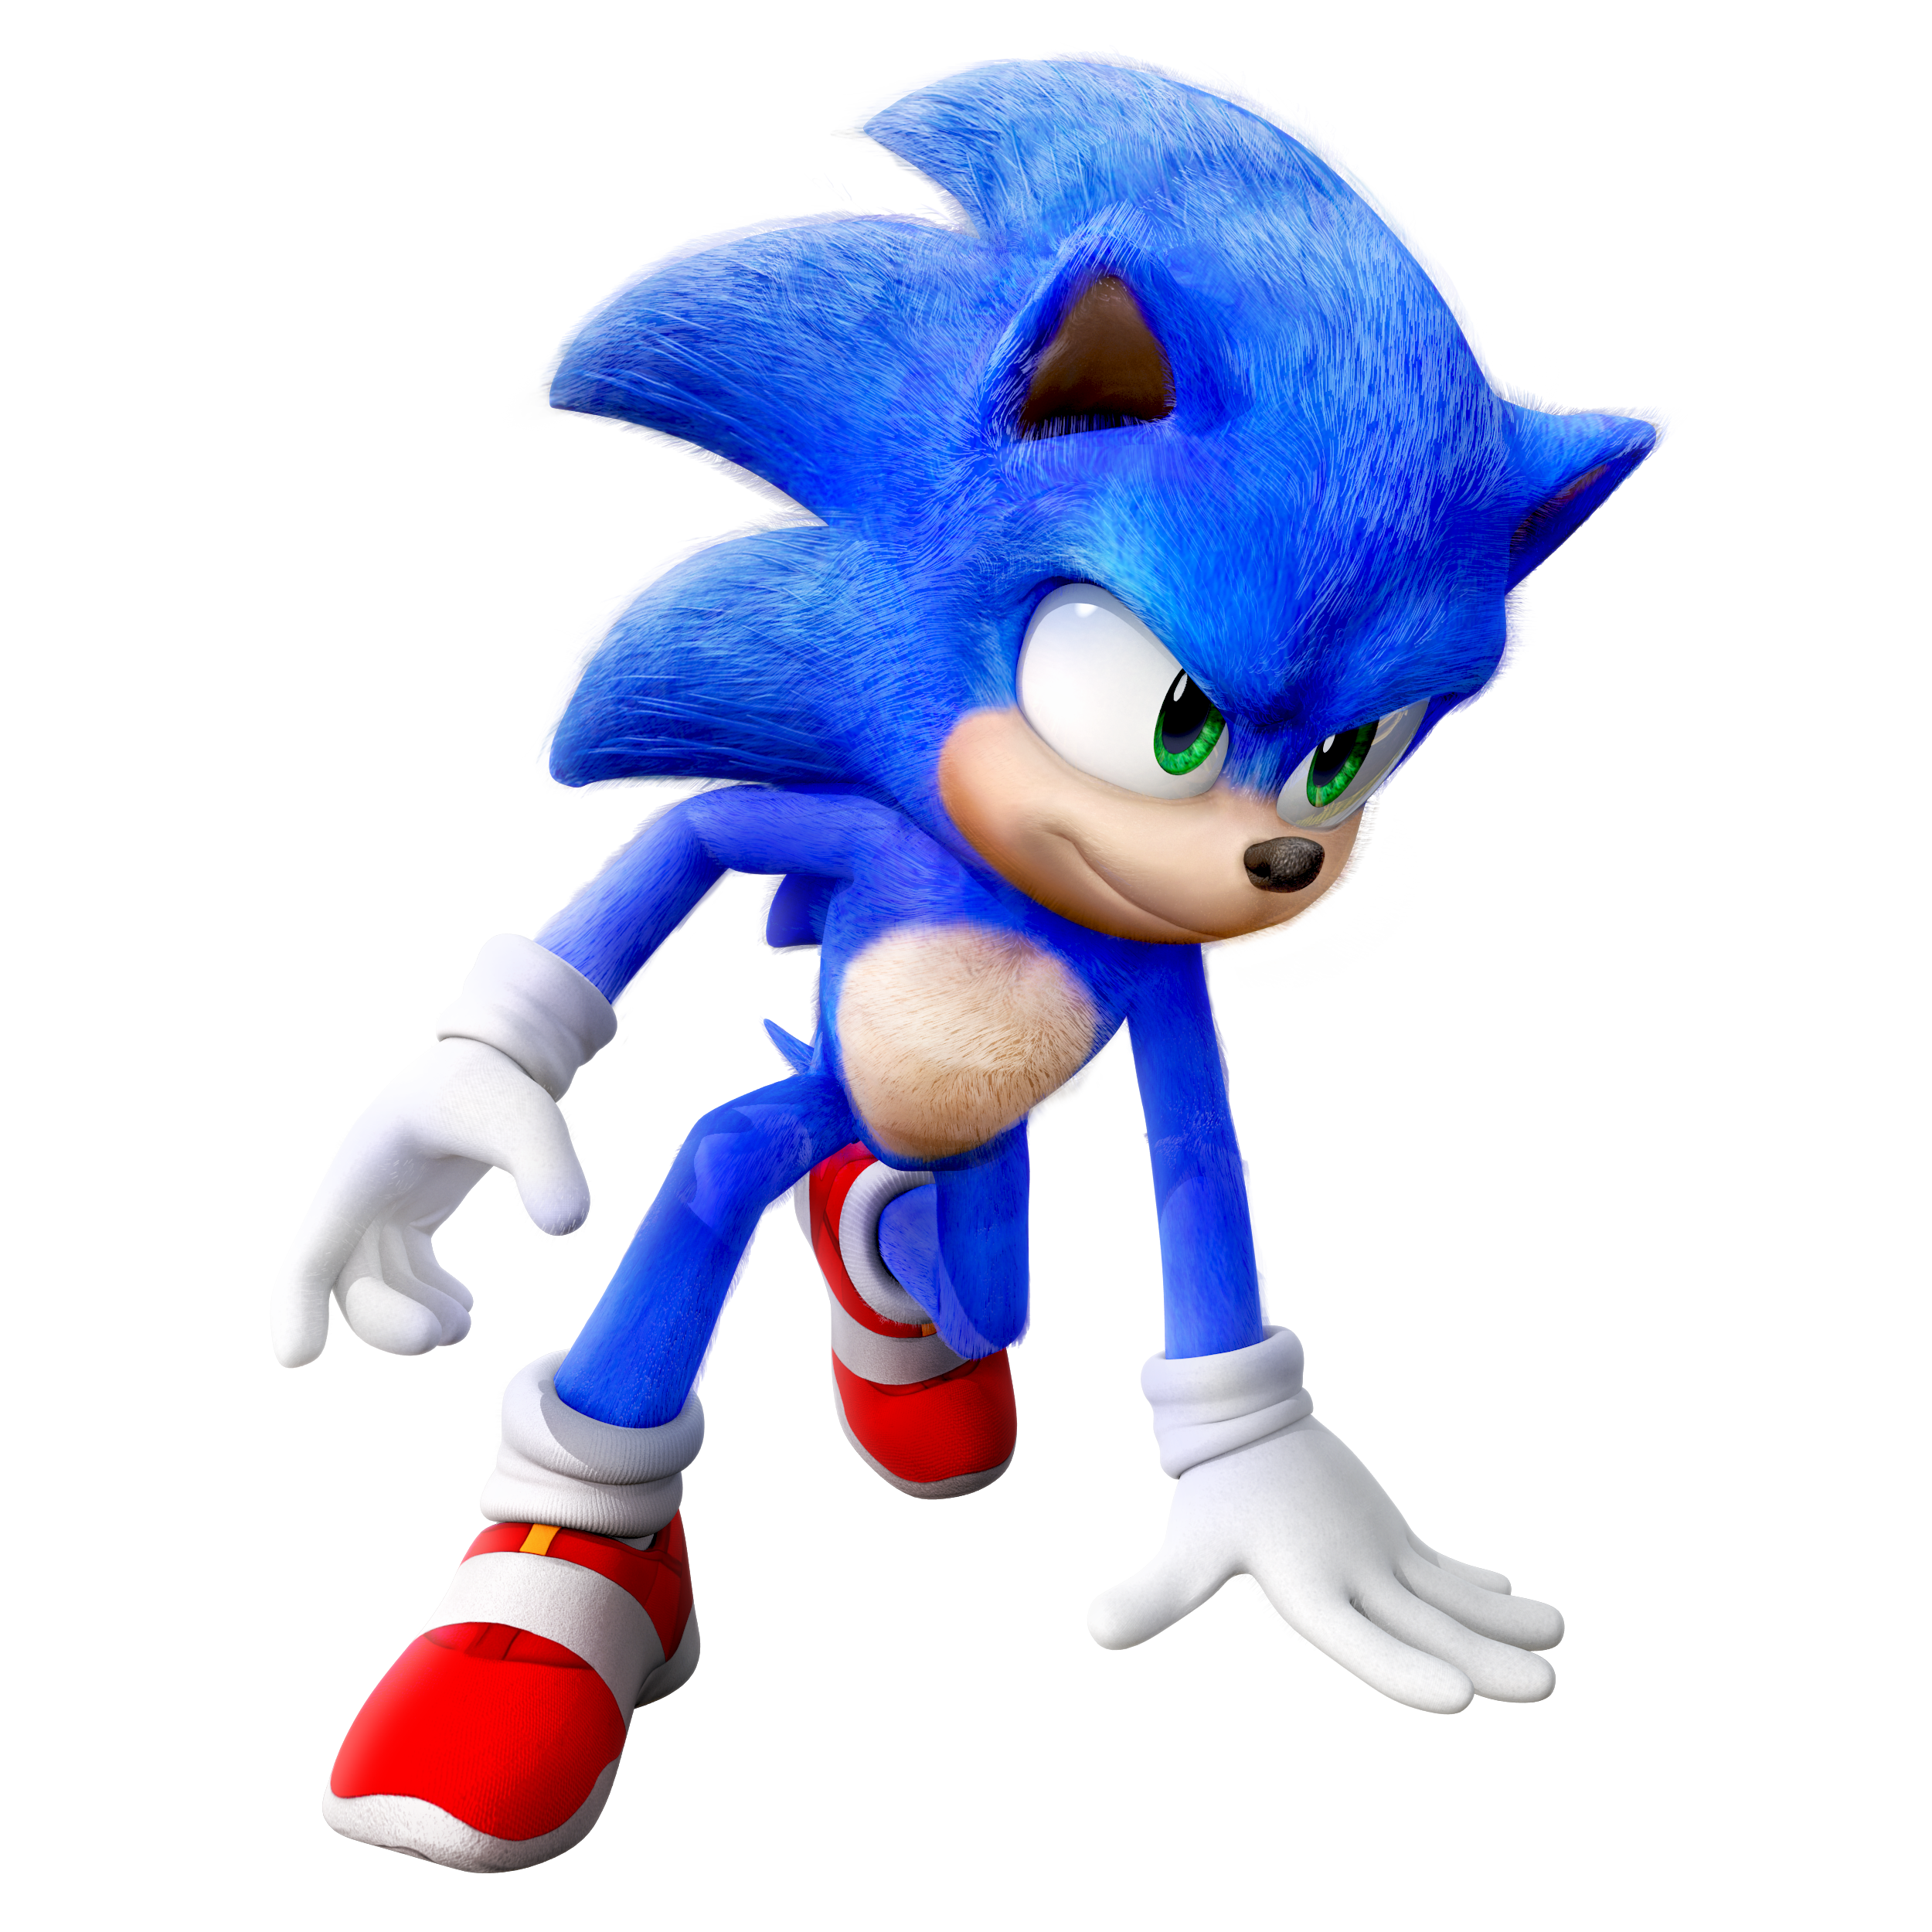 Movie Sonic Render By Nibroc Rock On Deviantart